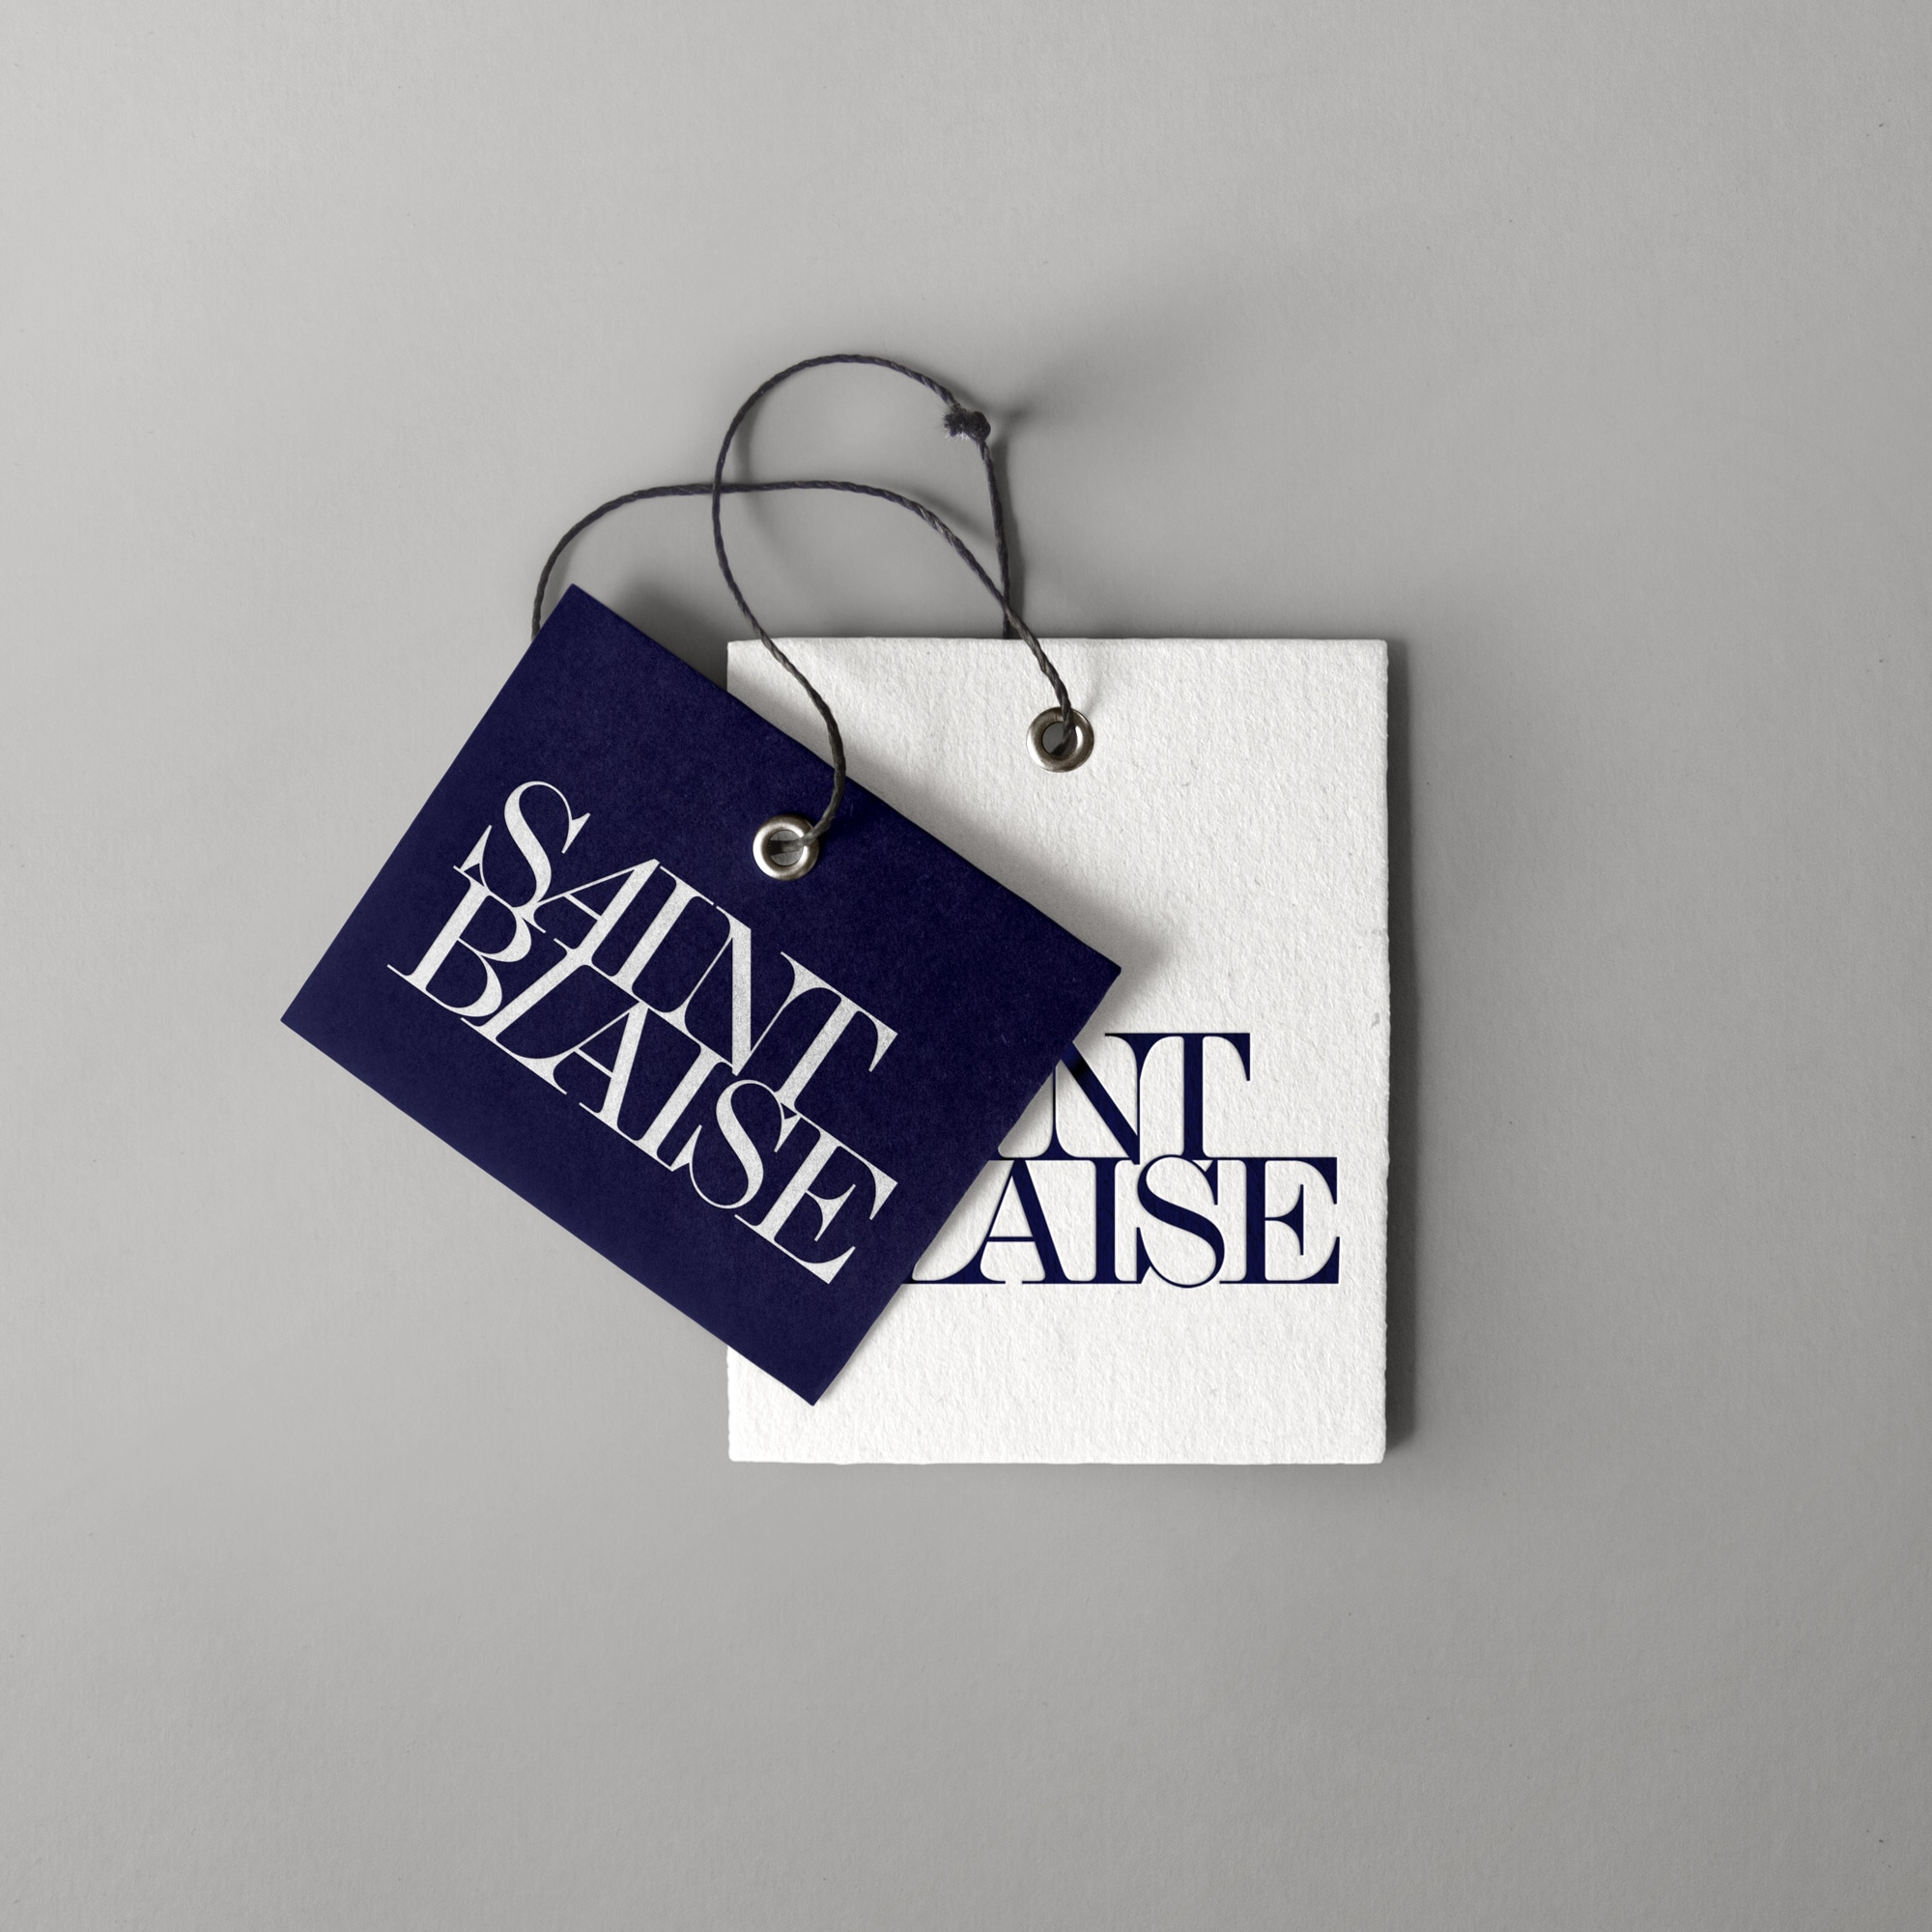 Saint Blaise - Branding, logo design, illustration